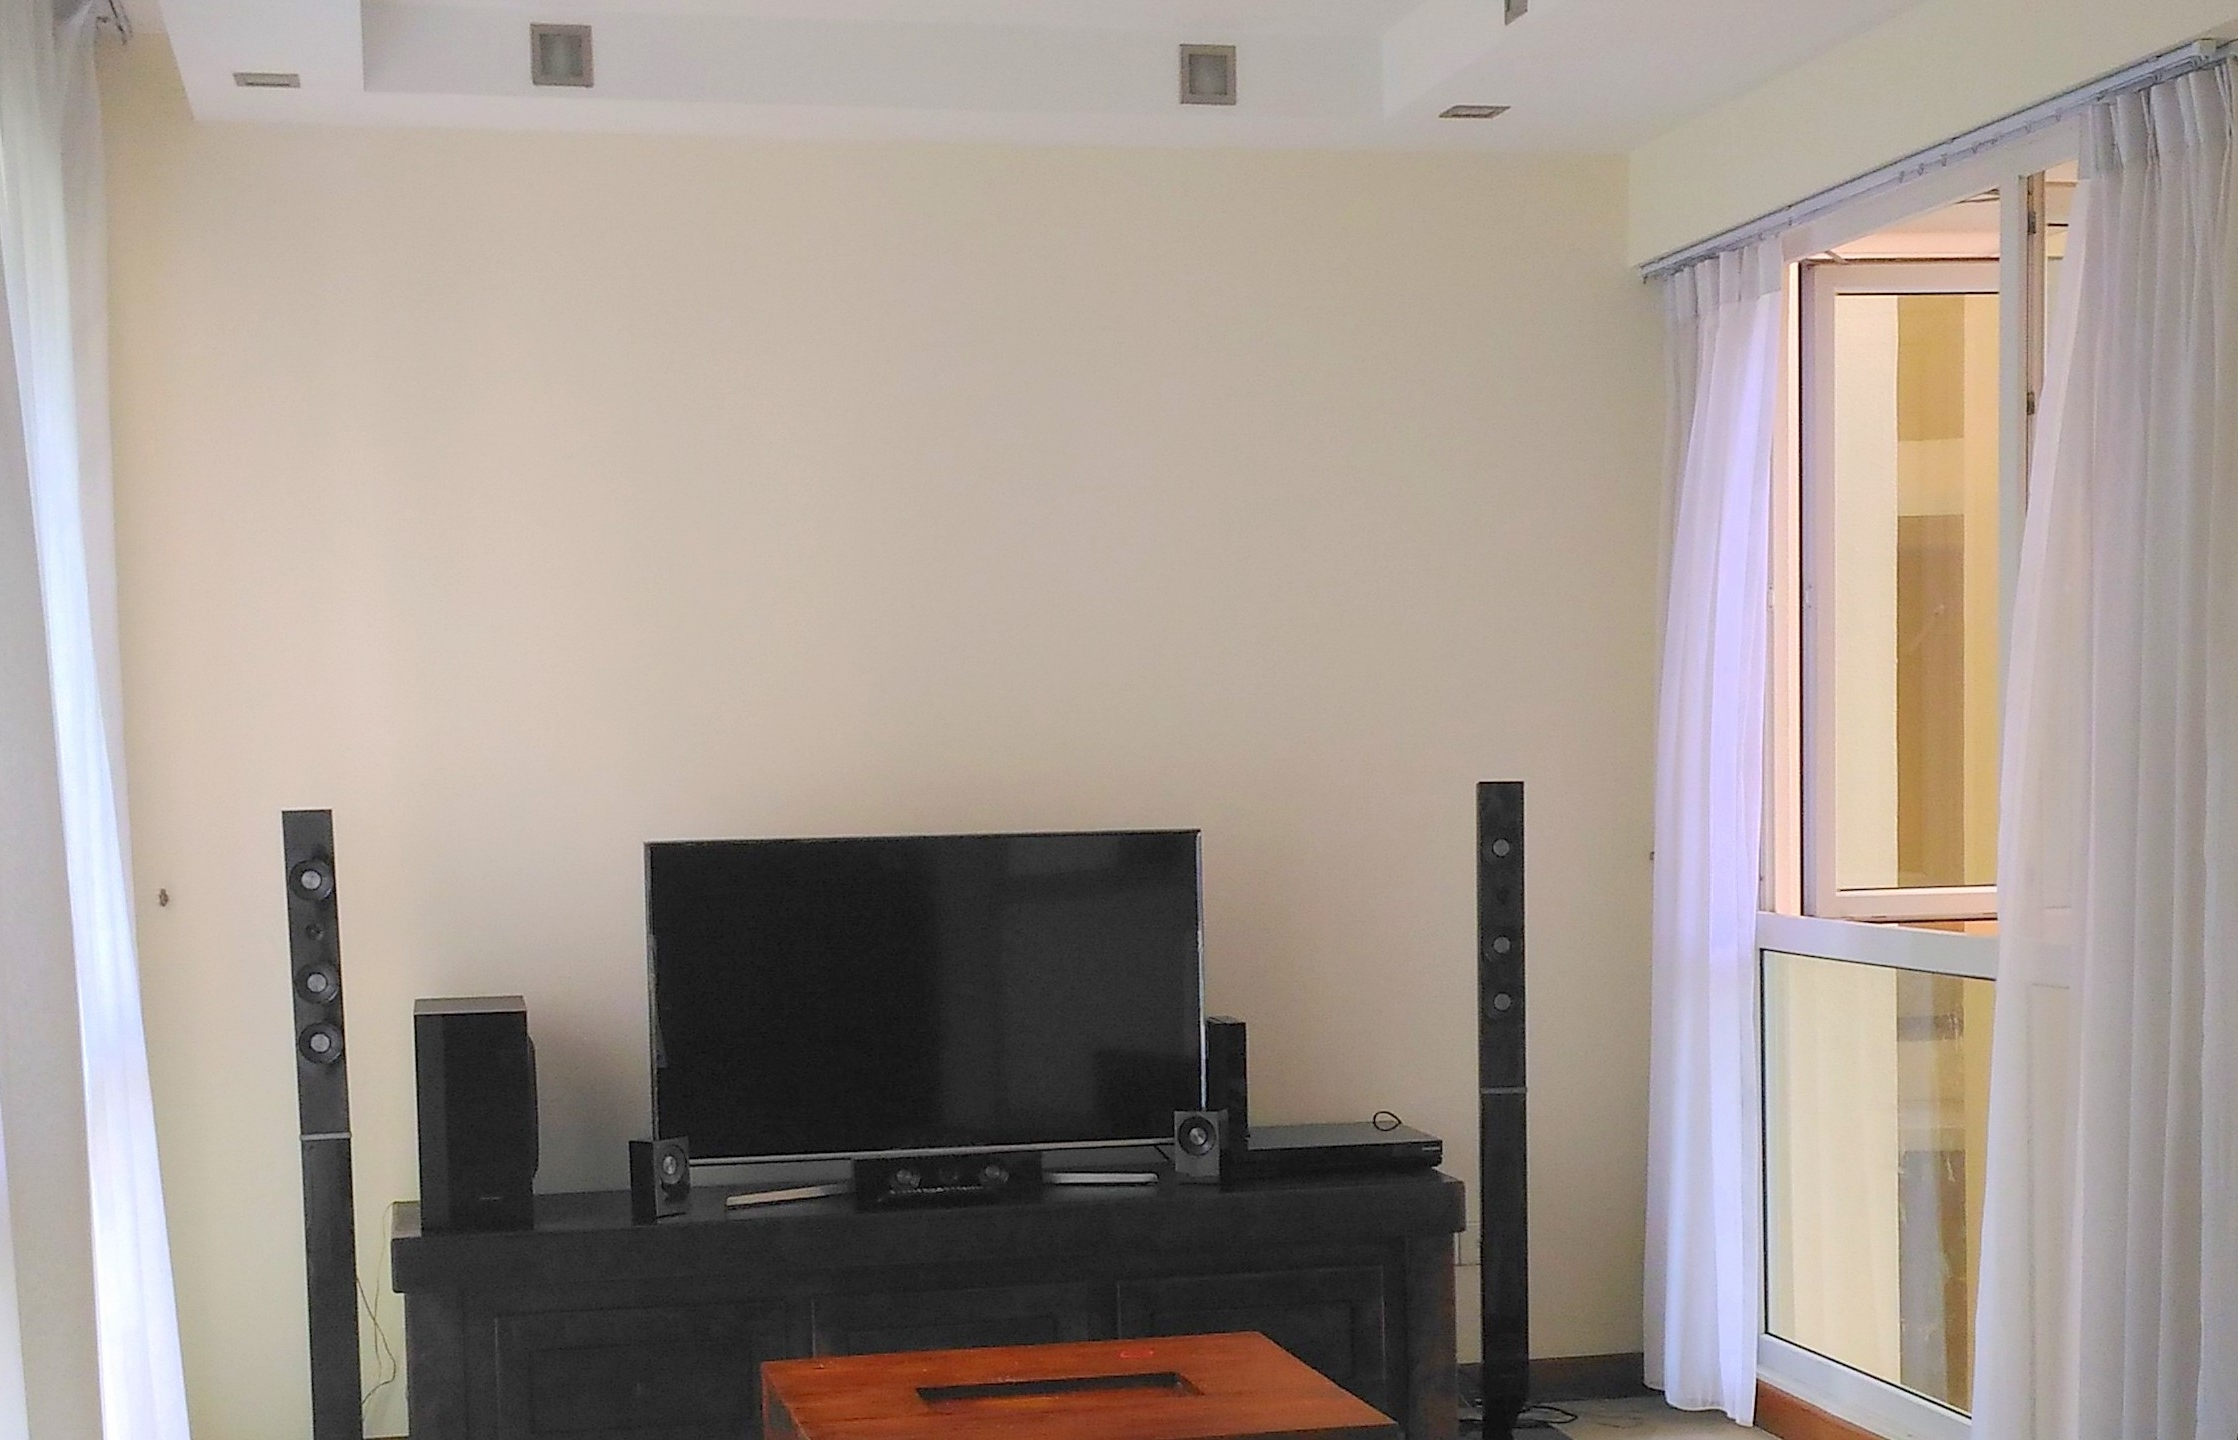 Nippon Paint Pre Painting Guide! Mums And Babies 40+ Nippon Paint Living Room Inspirations